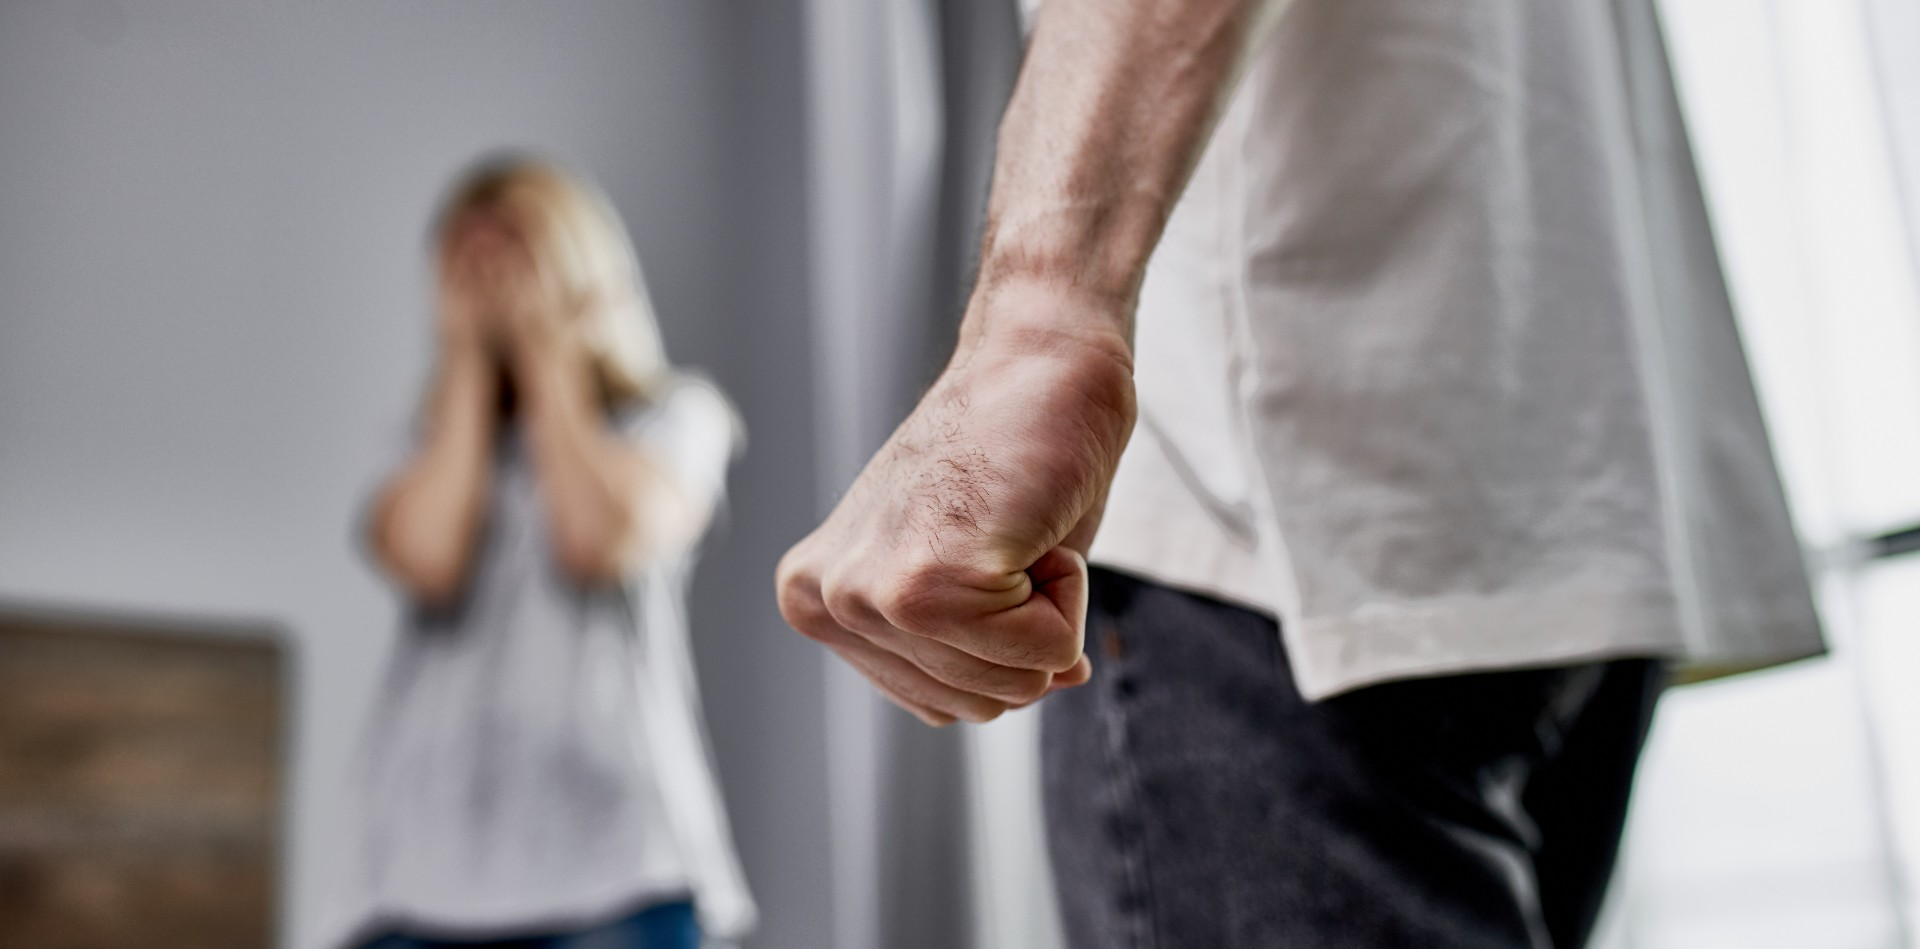 Man with Clenched Fist and Crying Woman